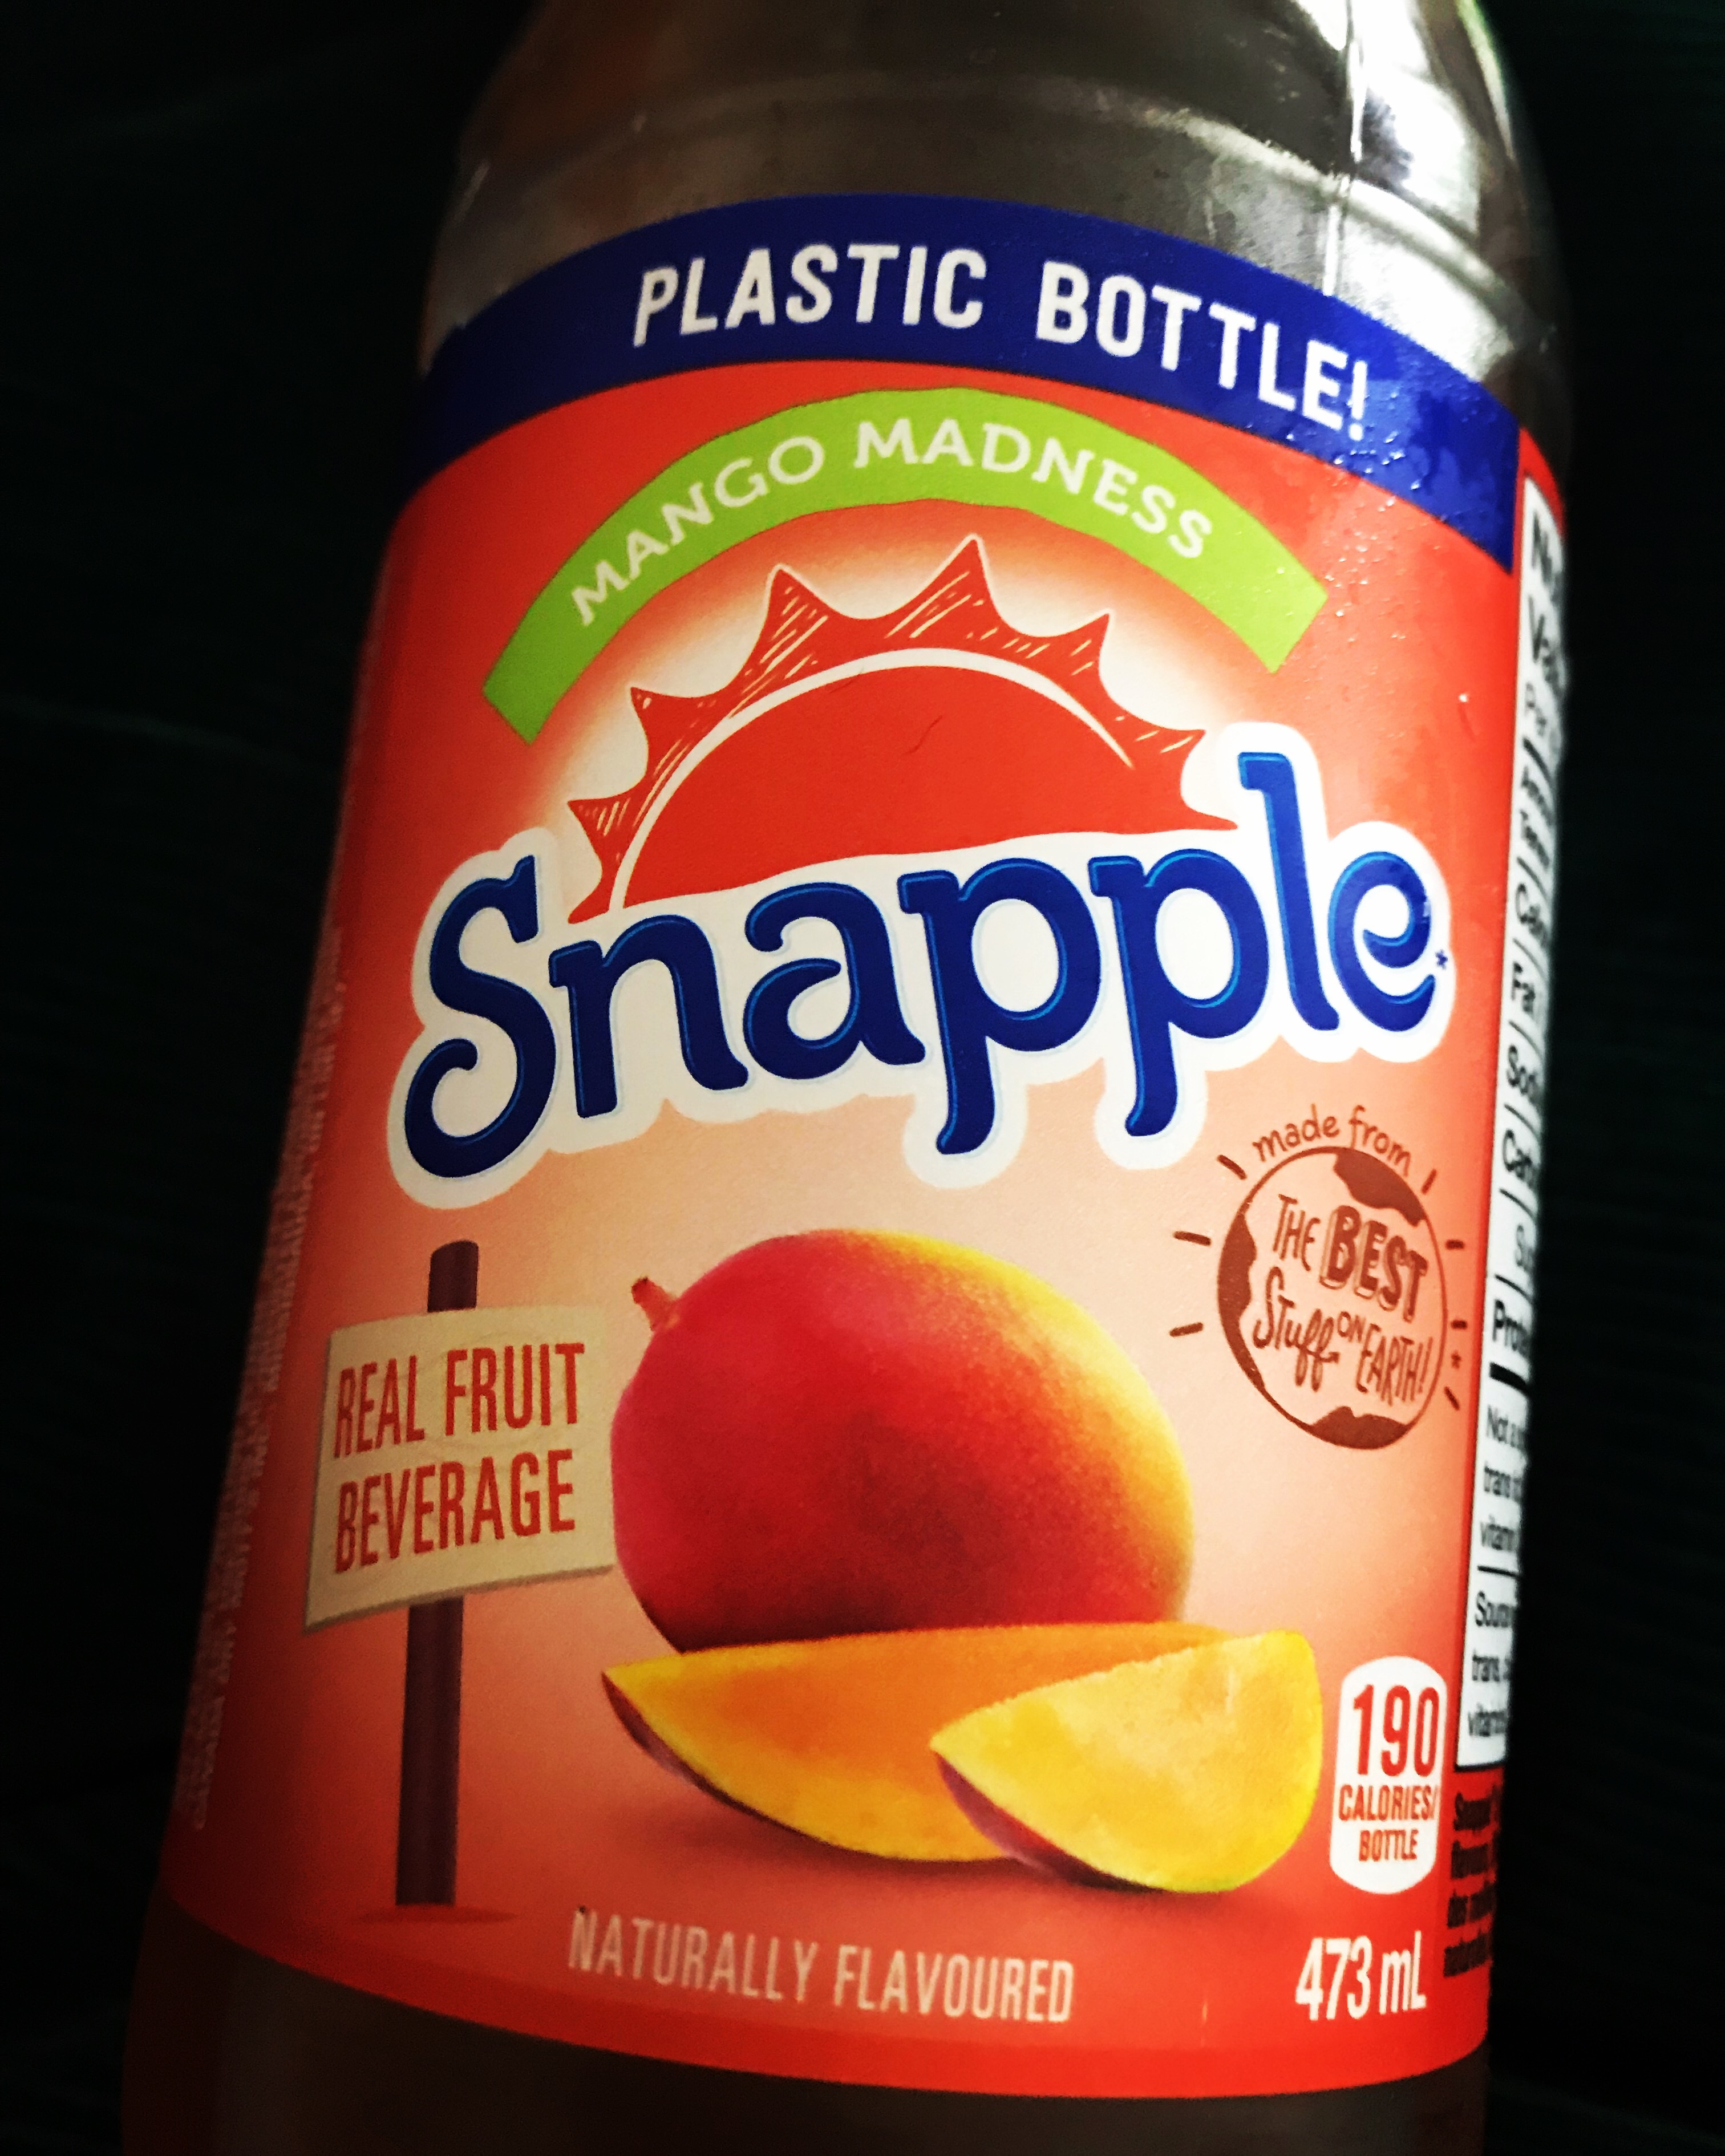 Snapple Mango Madness Juice Drink reviews in Juice - XY Stuff (page 3)